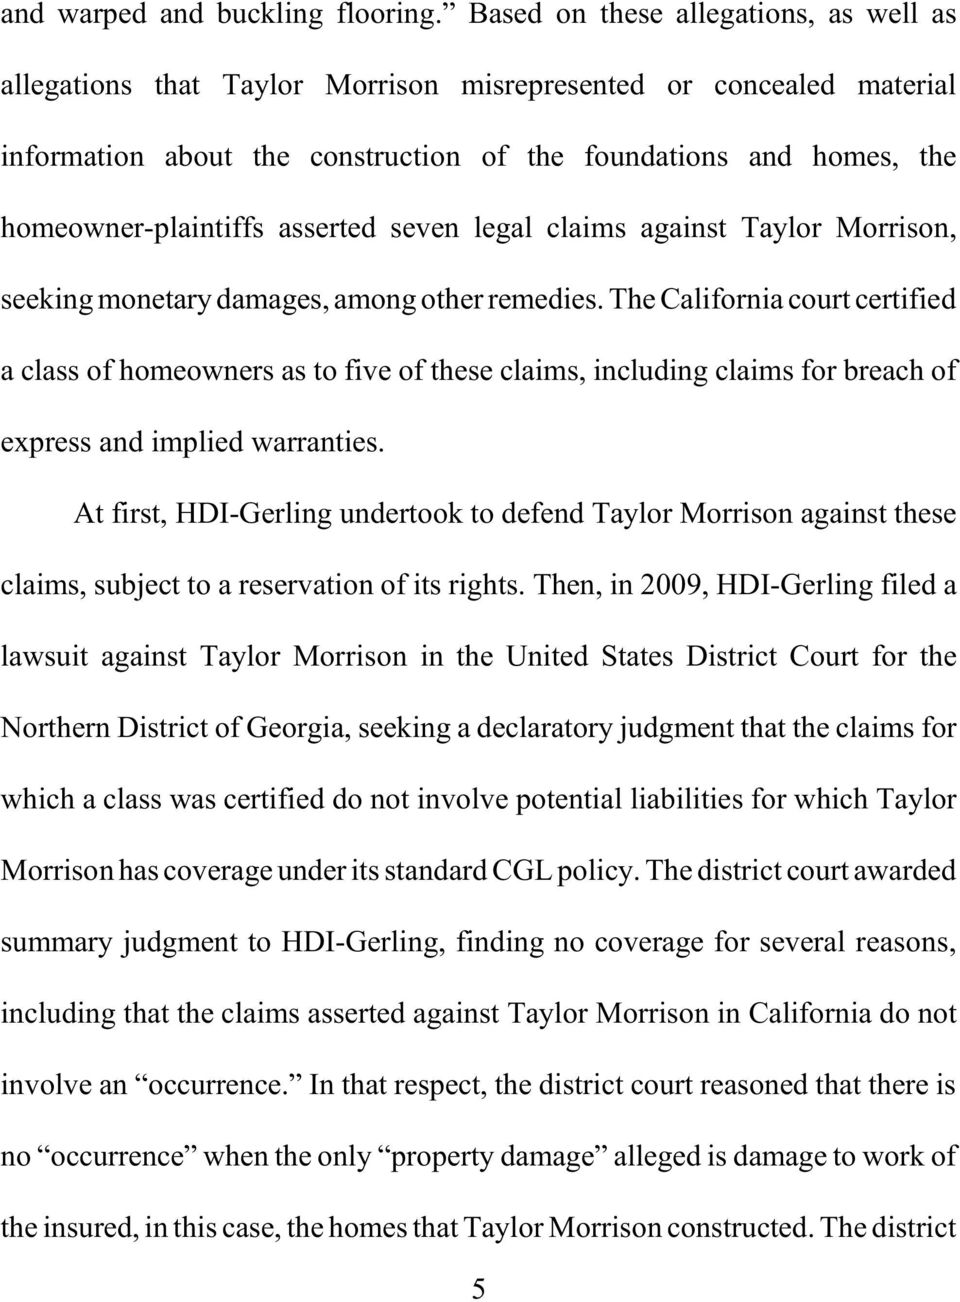 asserted seven legal claims against Taylor Morrison, seeking monetary damages, among other remedies.